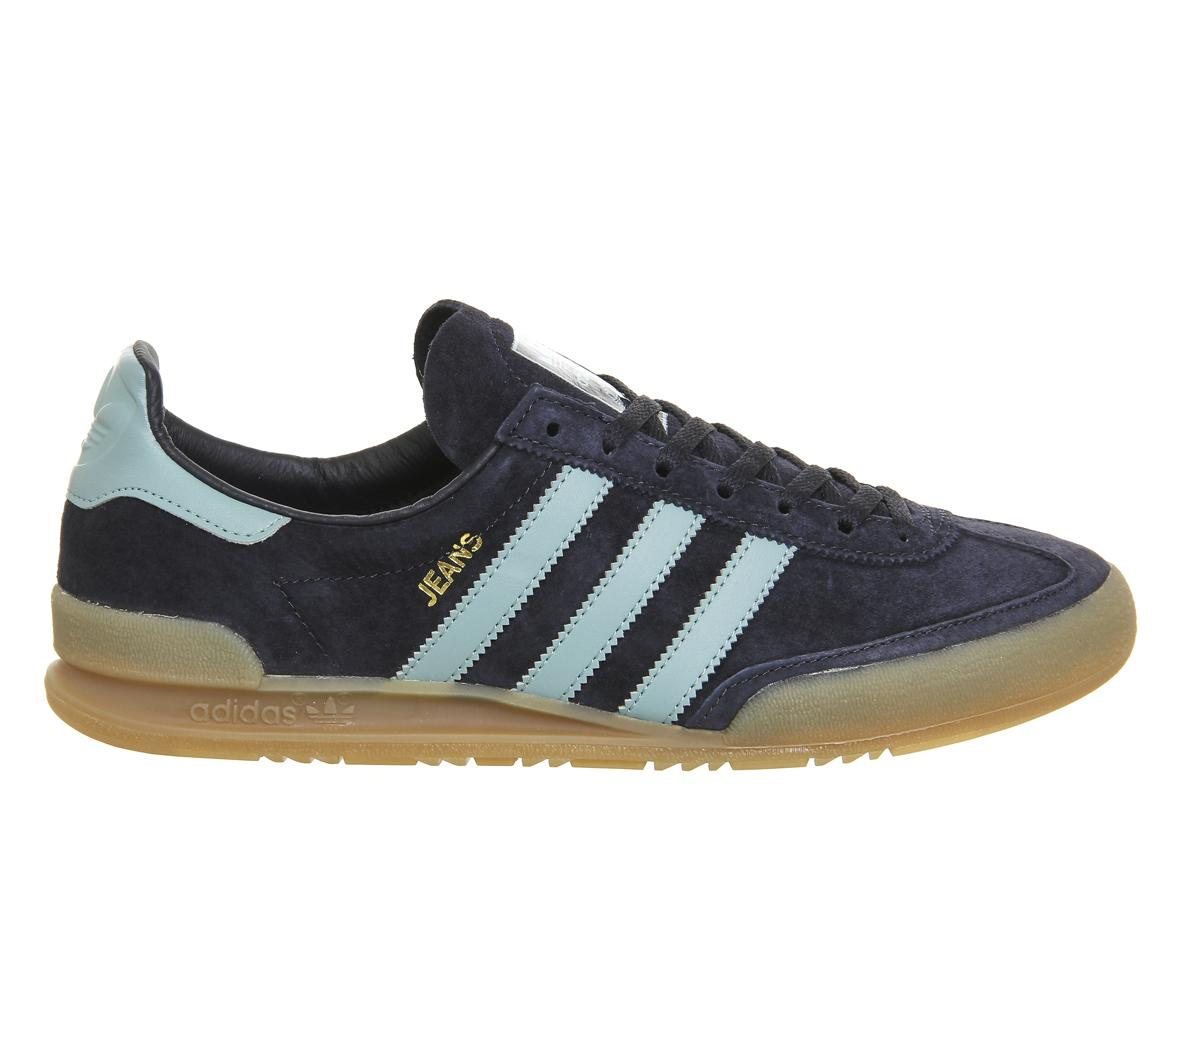 lyst adidas originals jeans trainers in blue for men